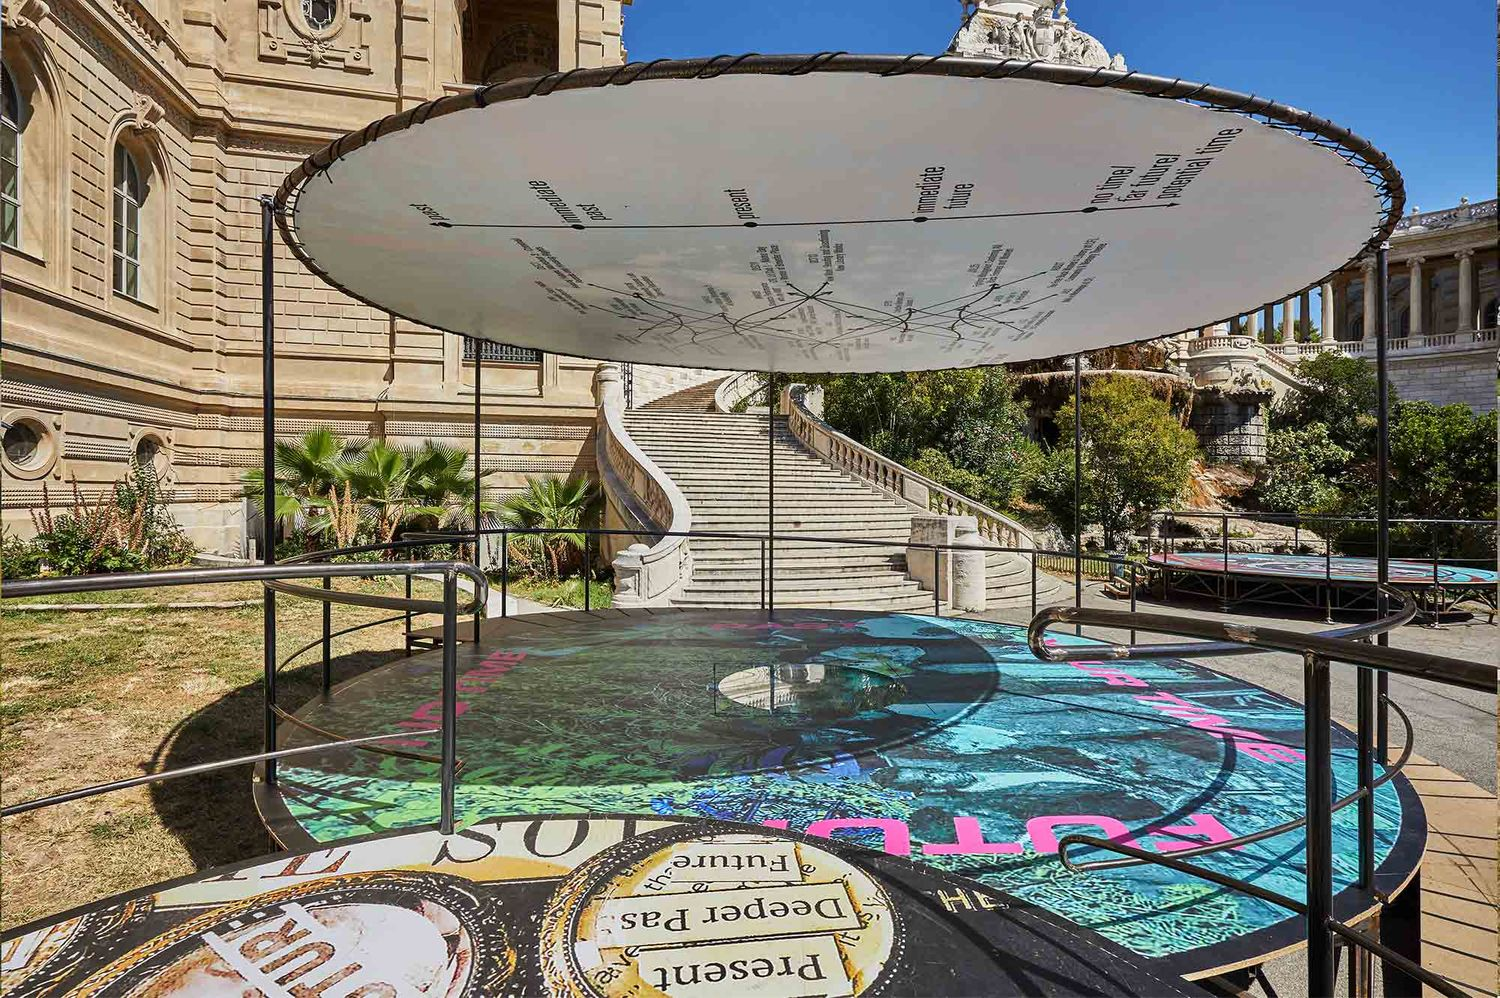 Outside the Palais Longchamp there is a cylindric stage interlocking with another cylindric stage. Both of the circular platforms have graphic text and digital textures patterning the floor.